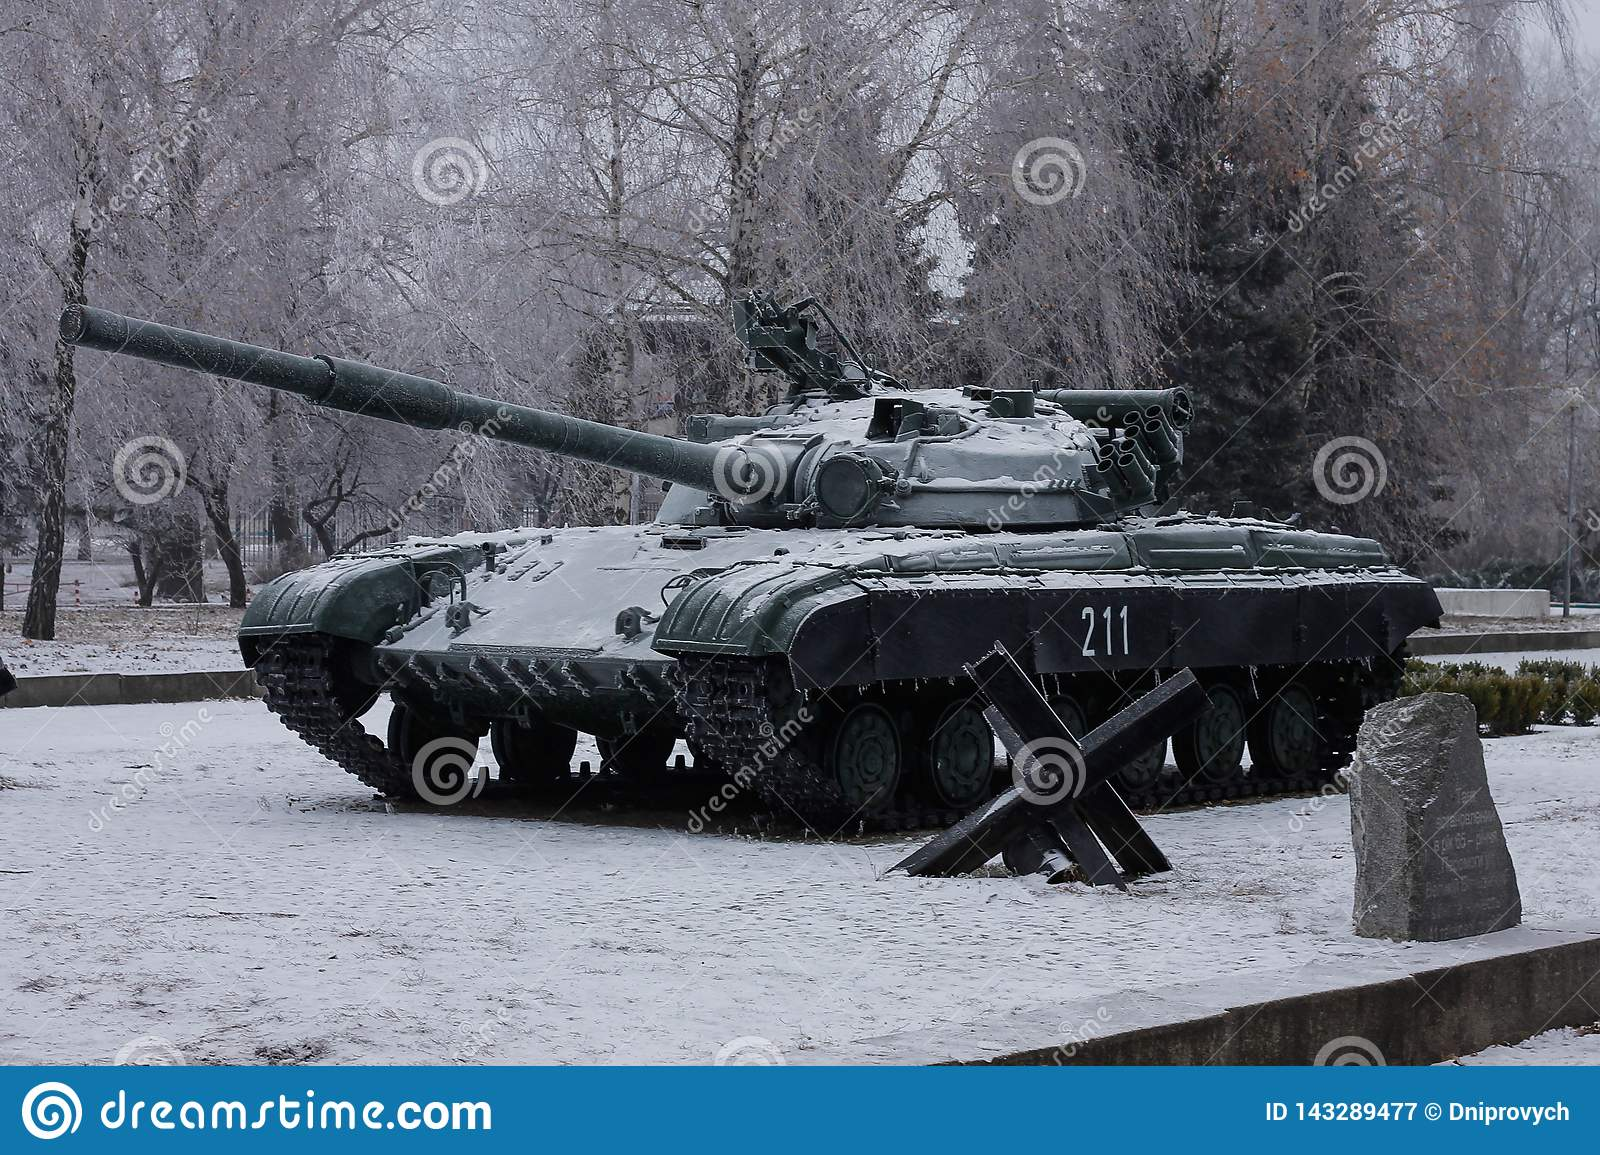 The T-64 is a Soviet second-generation main battle tank